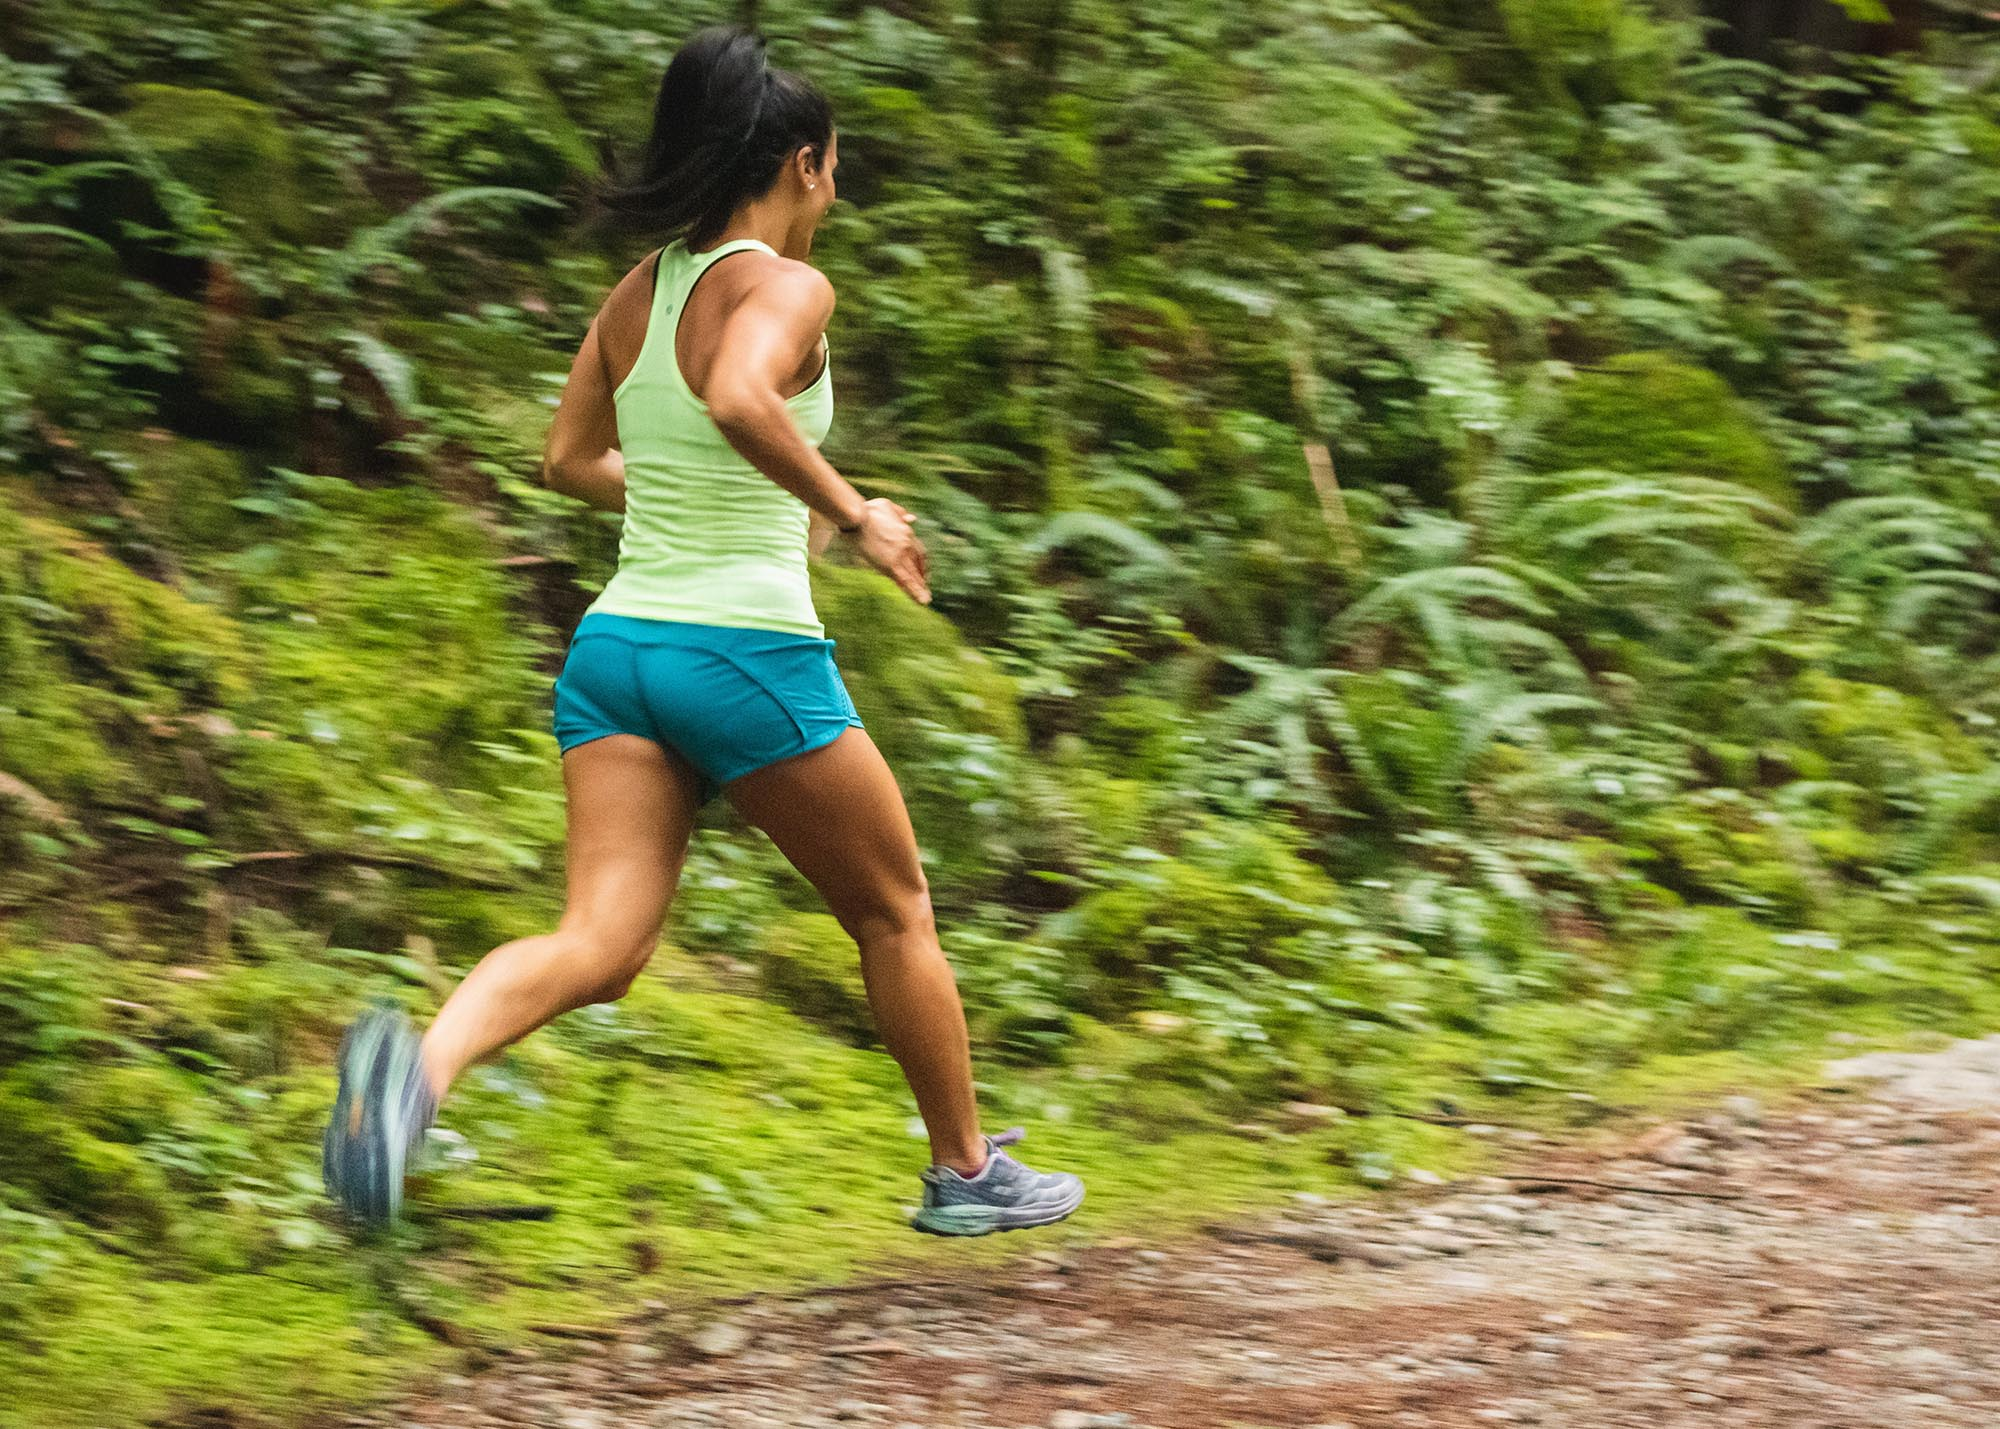 Have you wondered how to start running?